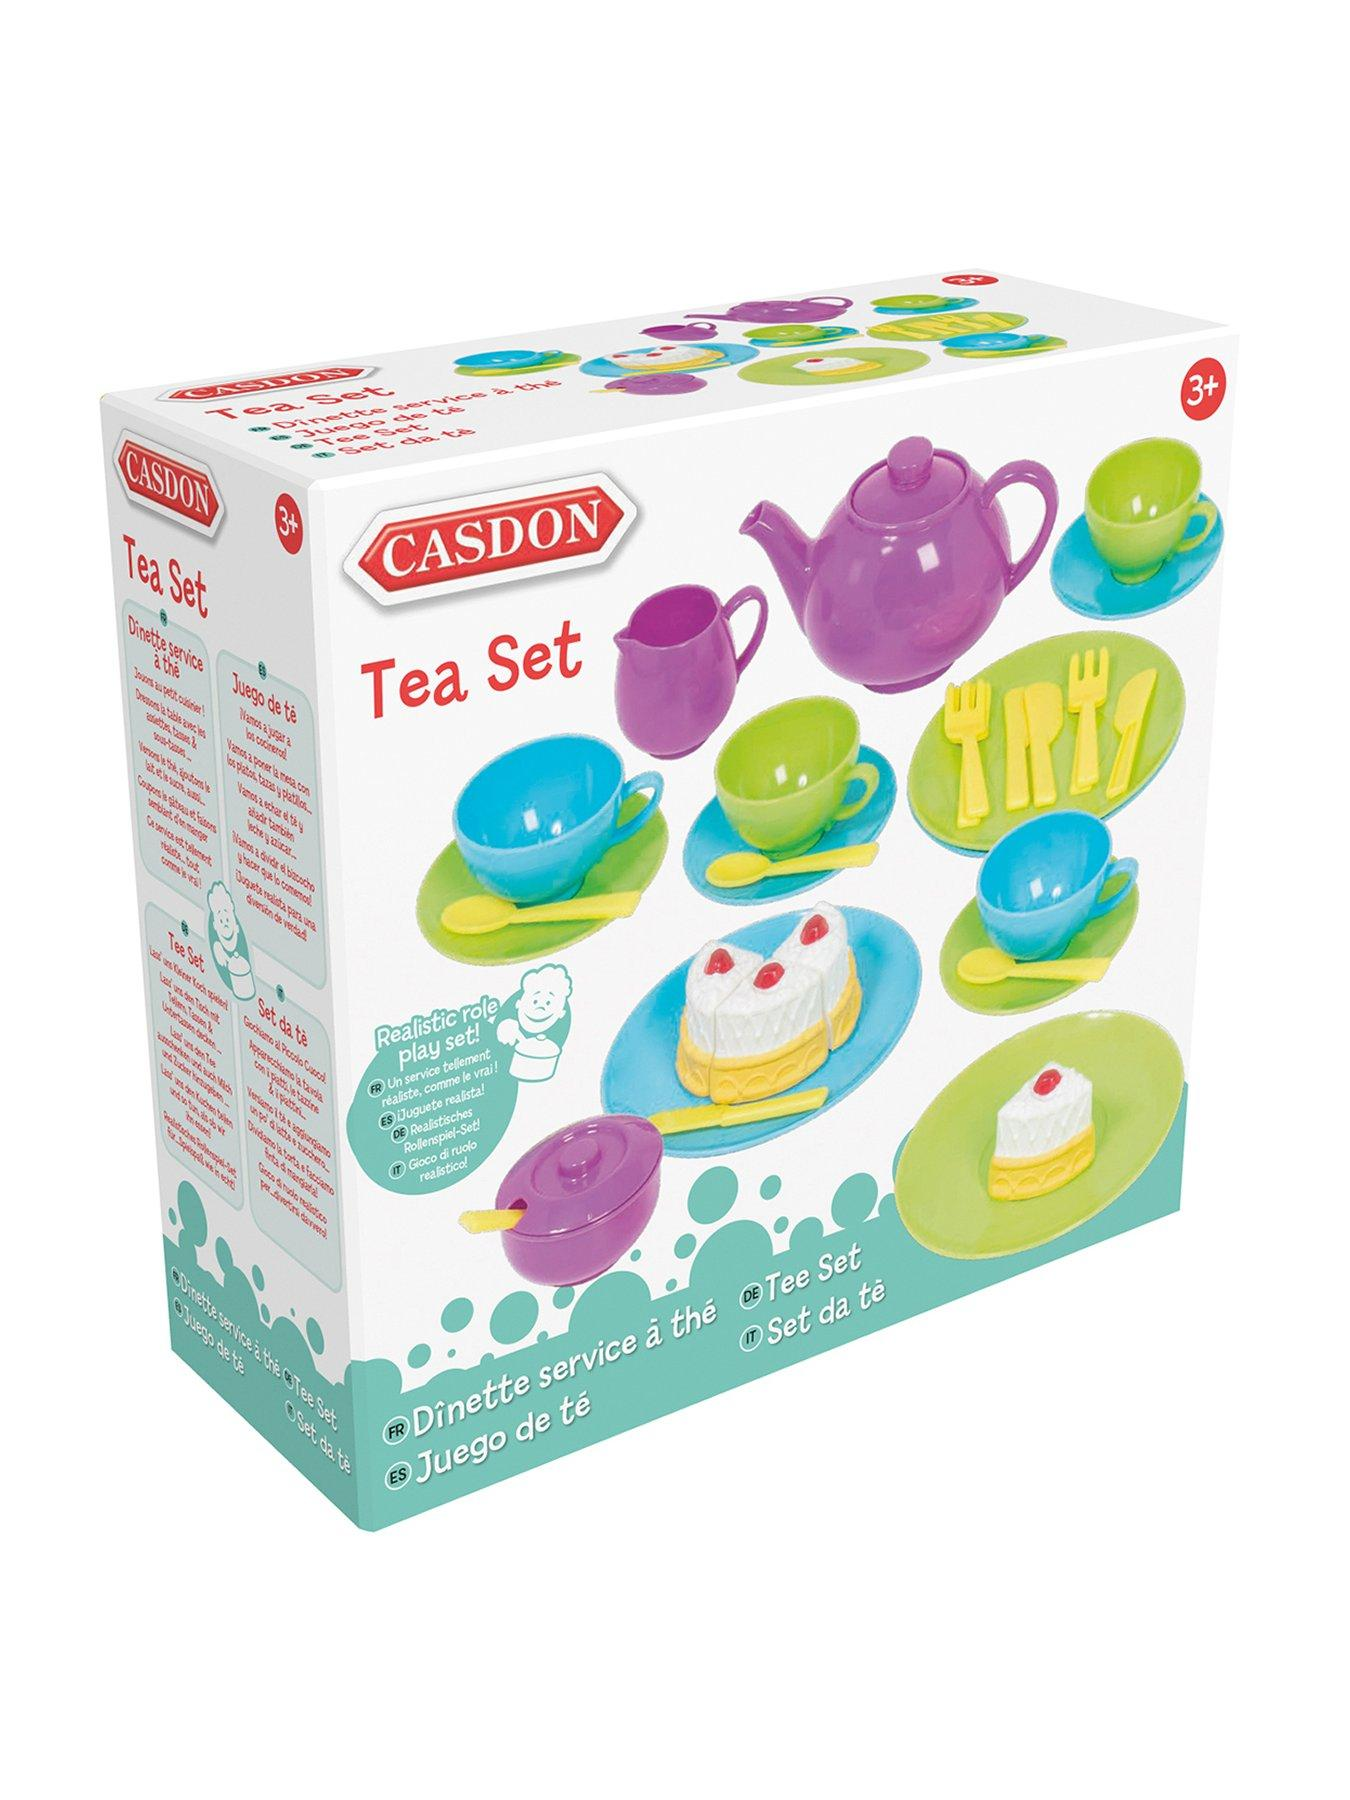 New Girls Dinnerware Tea Set Toy Complete 34 Piece Tea Party Set Role Play Gift